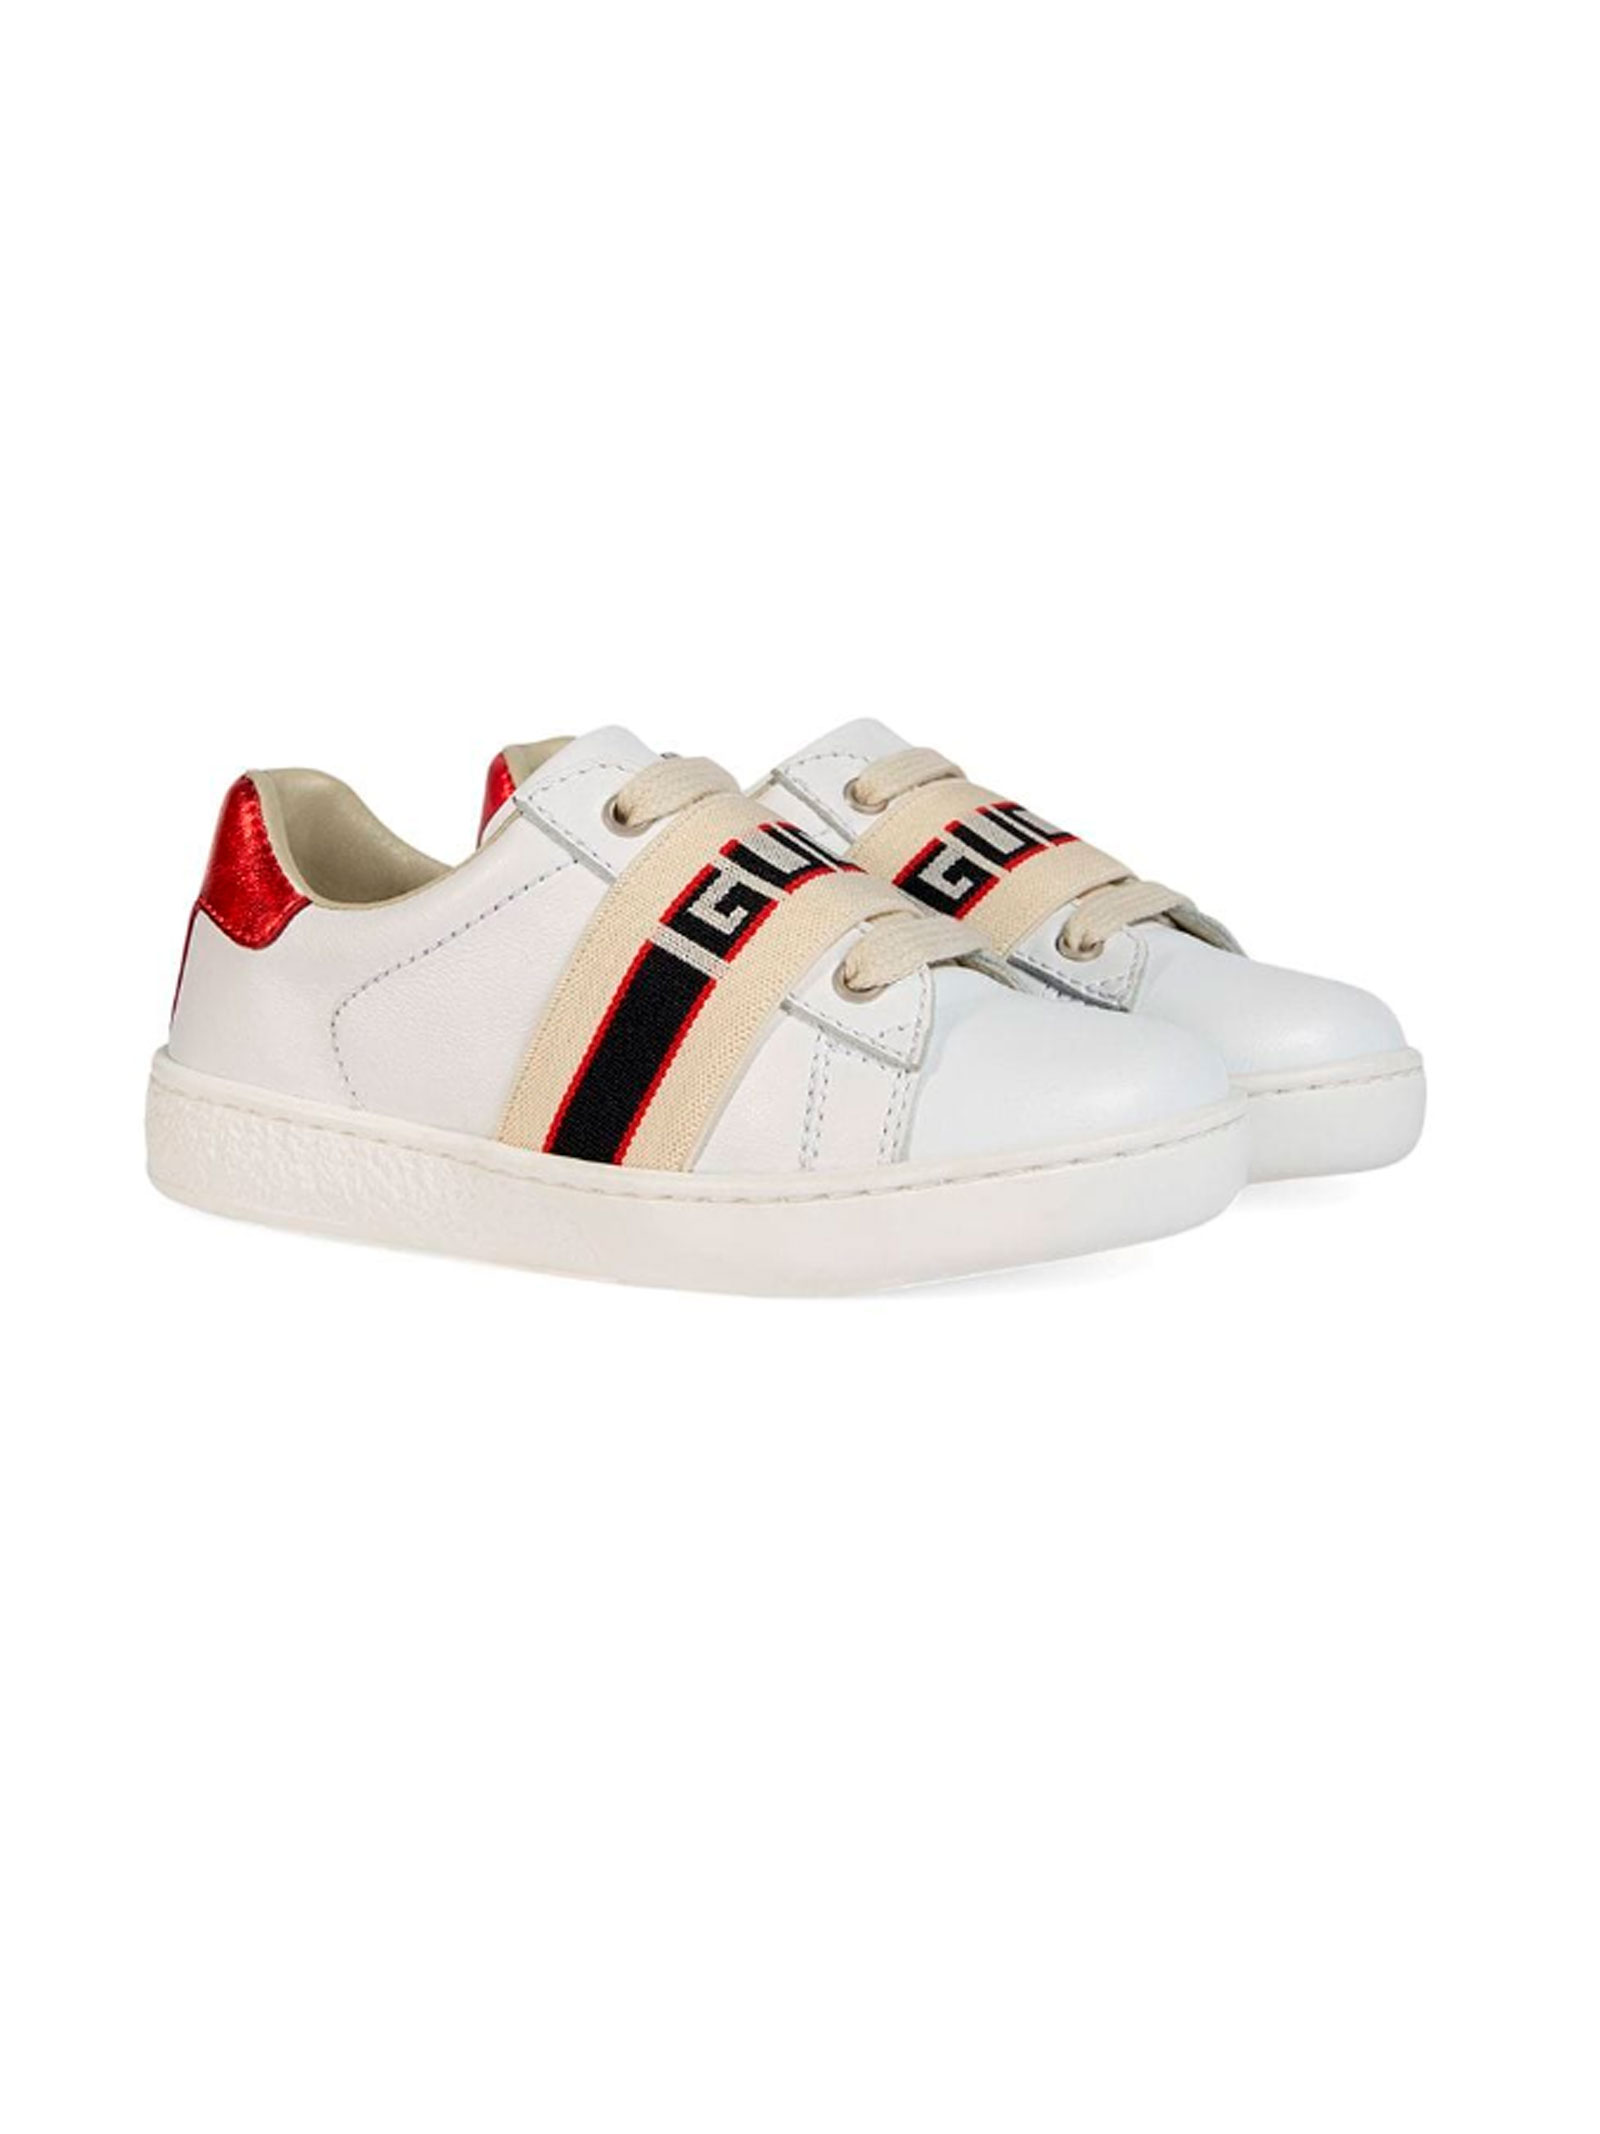 60b788a69 ... WHITE GUCCI KIDS BABY SHOES GUCCI KIDS | 12 | 5529400IIR09065 ...